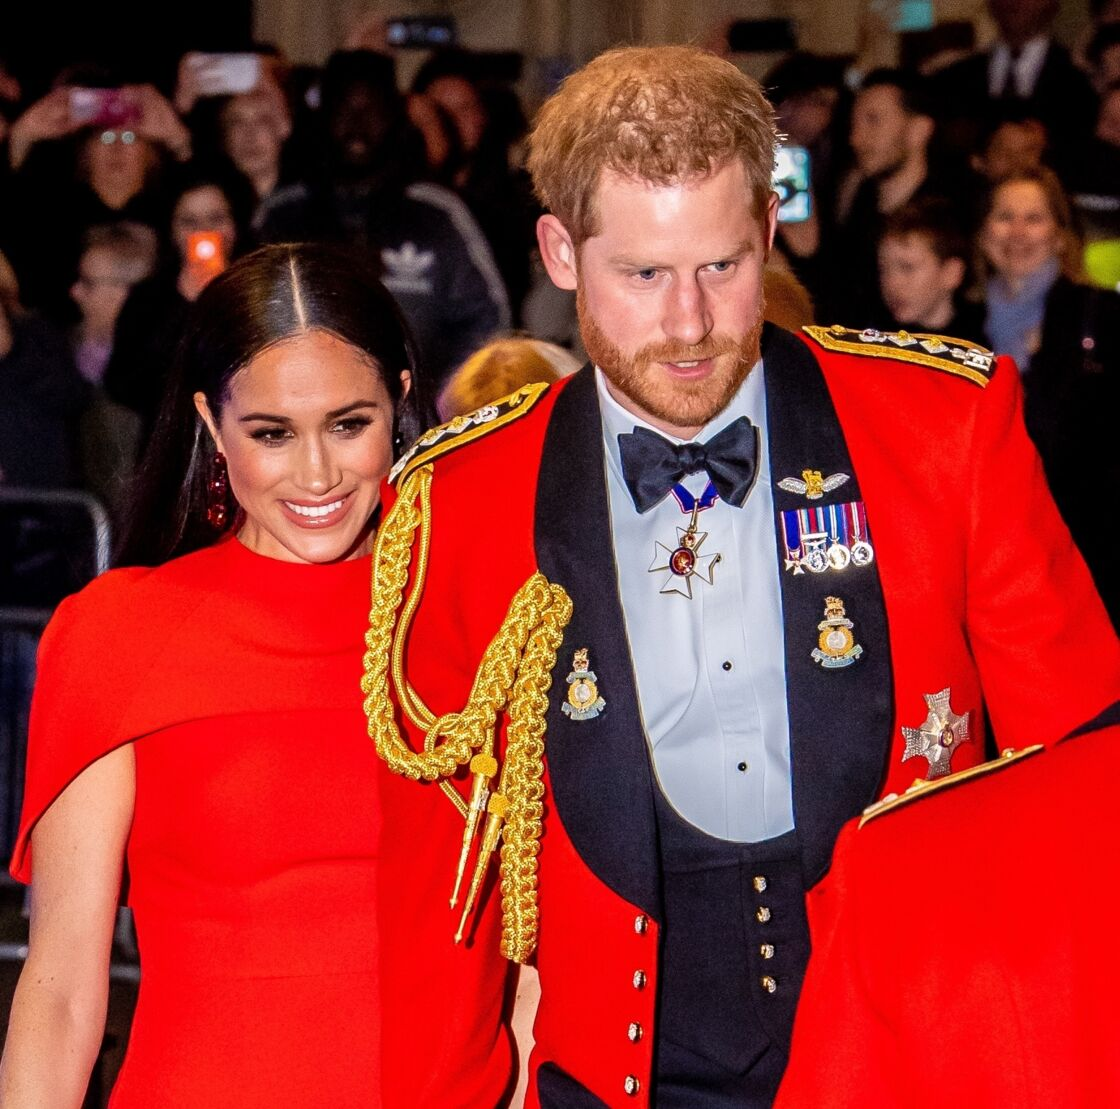 Meghan Markle et Harry, le 7 mars 2020 au Royal Albert Hall